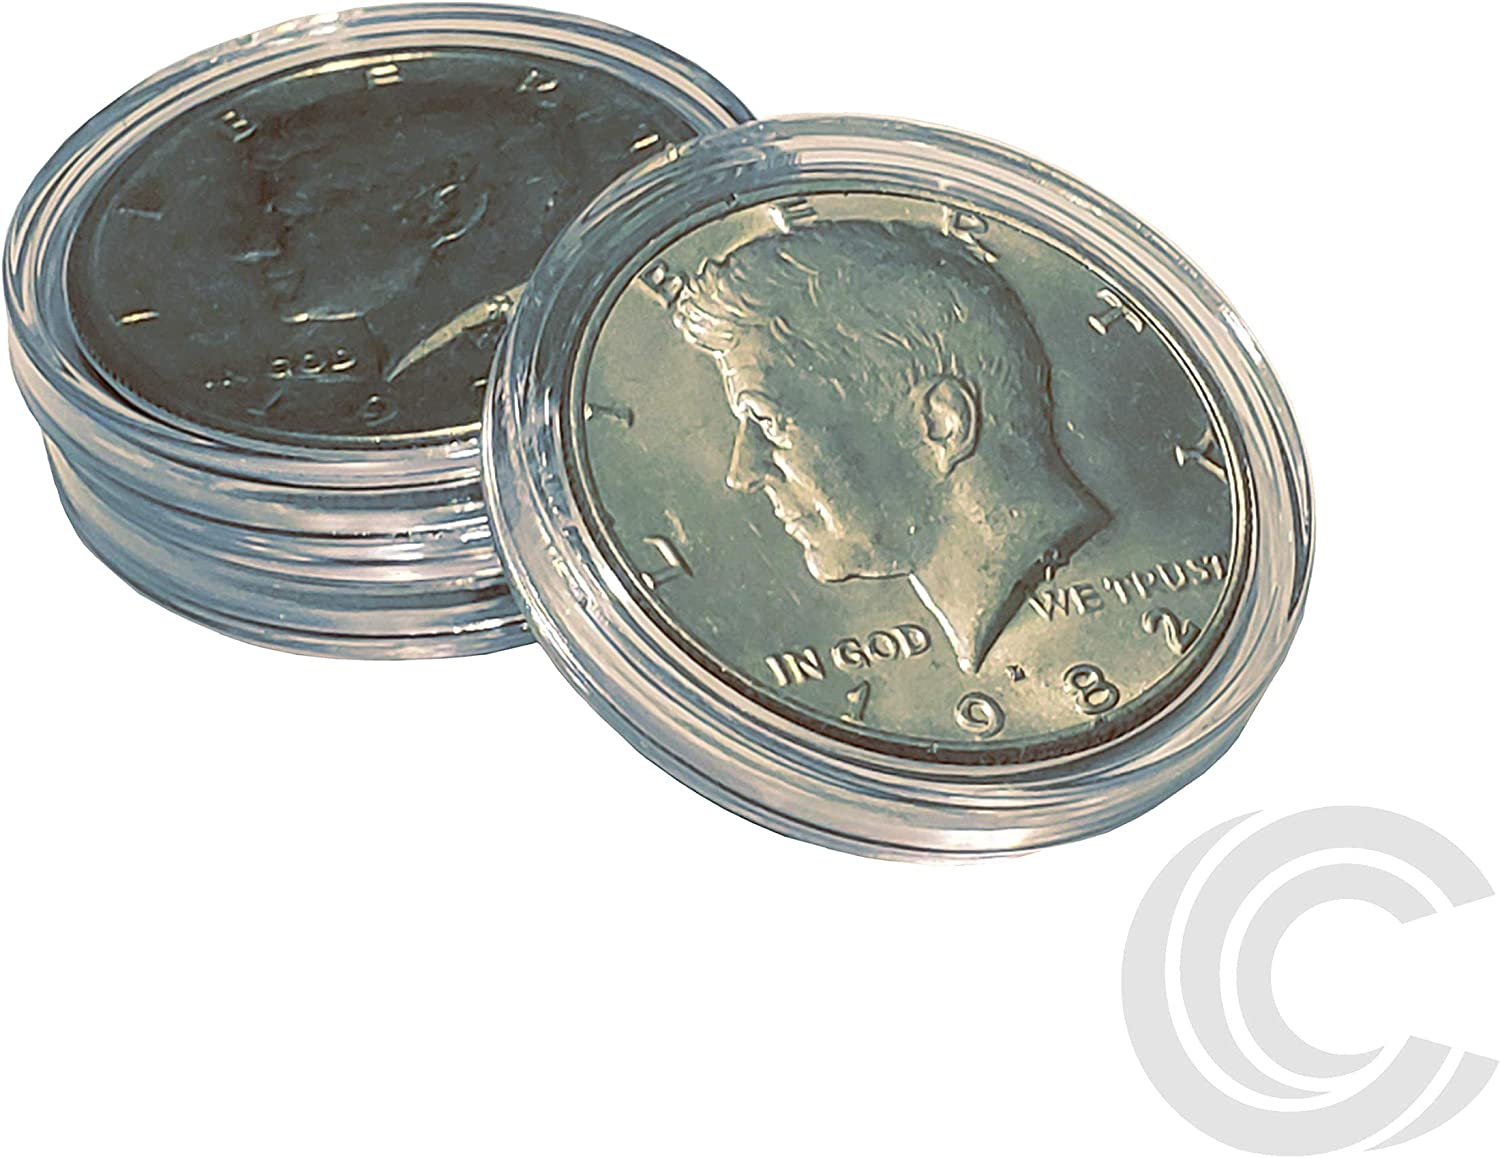 NEW 3 Airtite Direct Fit Coin Holder Capsules T30 For Half Dollar Like KENNEDY